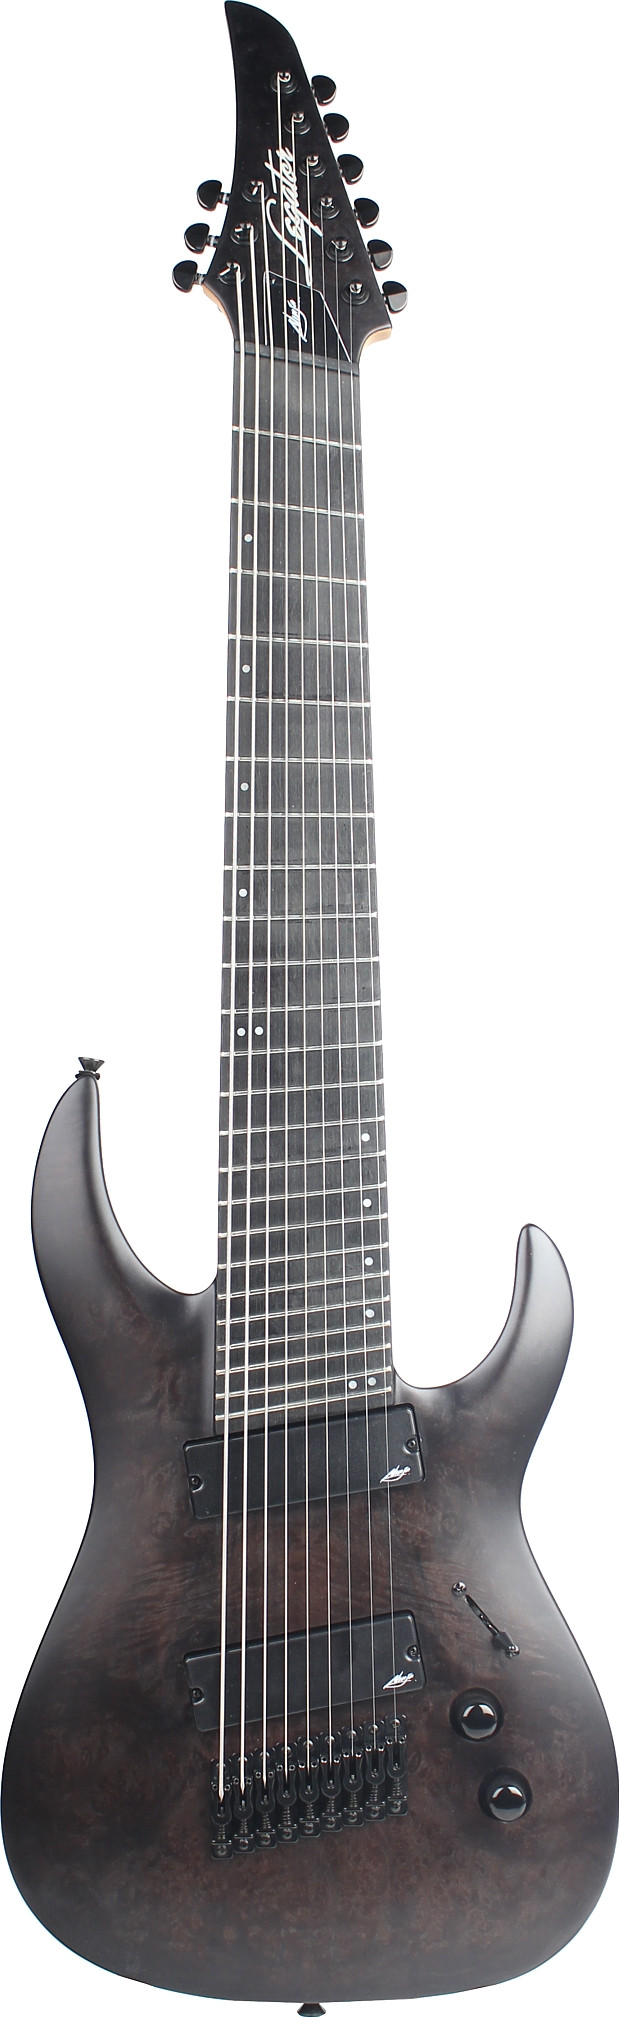 Ninja R 300-PRO Fanned Fret 9-String by Legator Guitars